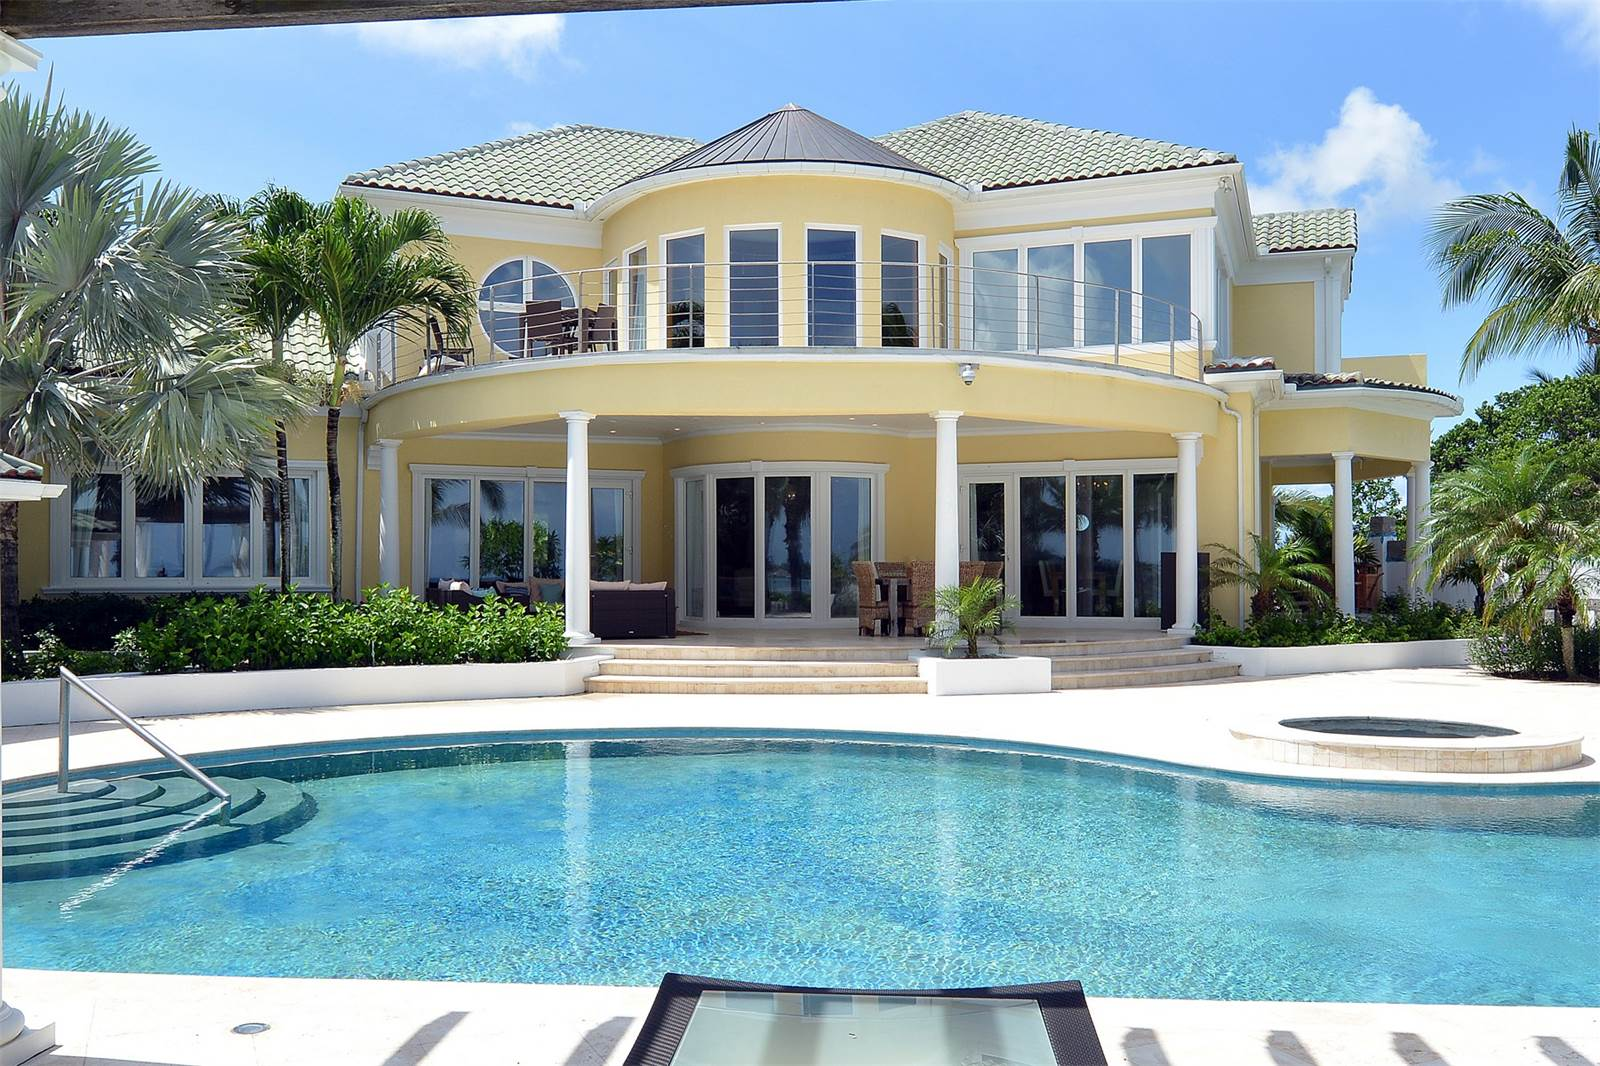 Single Family Home for Sale at Charming Beachfront Residence in Old Fort Bay Old Fort Bay, Nassau And Paradise Island, Bahamas